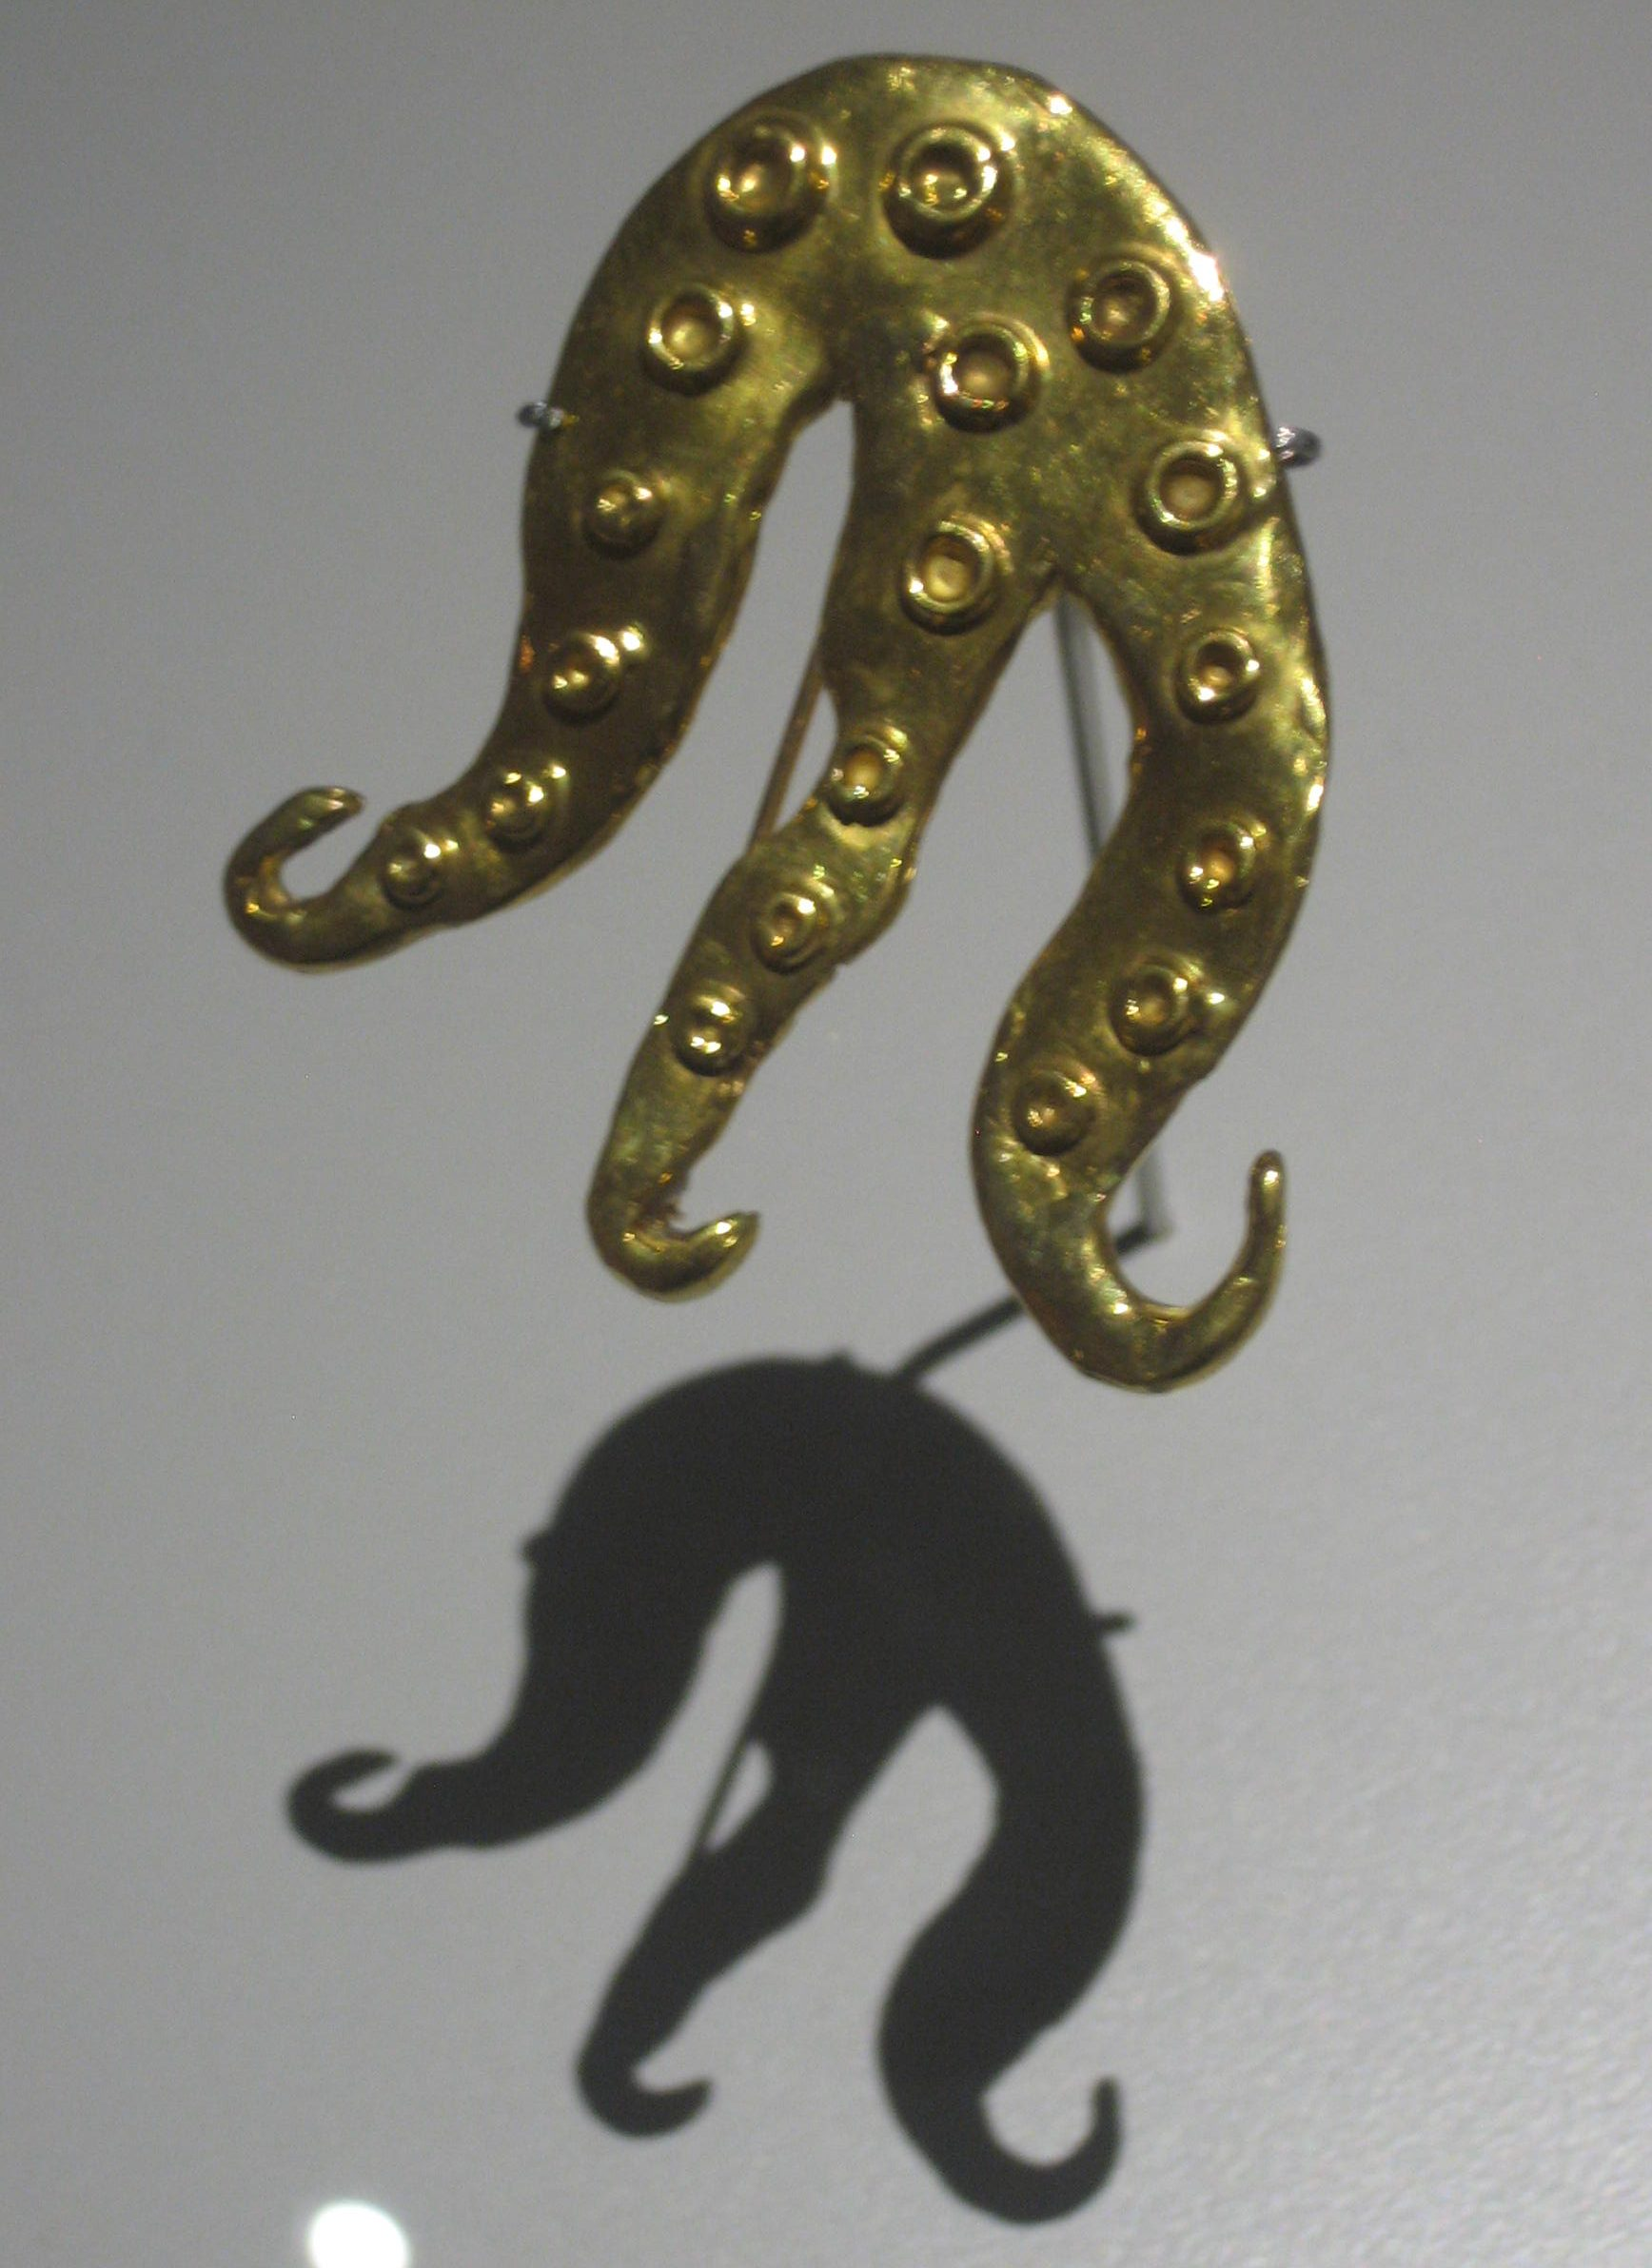 Dorothea Tanning, Miss Octopus, broche, 1966. Uitgevoerd door François Hugo. Foto Esther Doornbusch, oktober 2017, CC BY 4.0